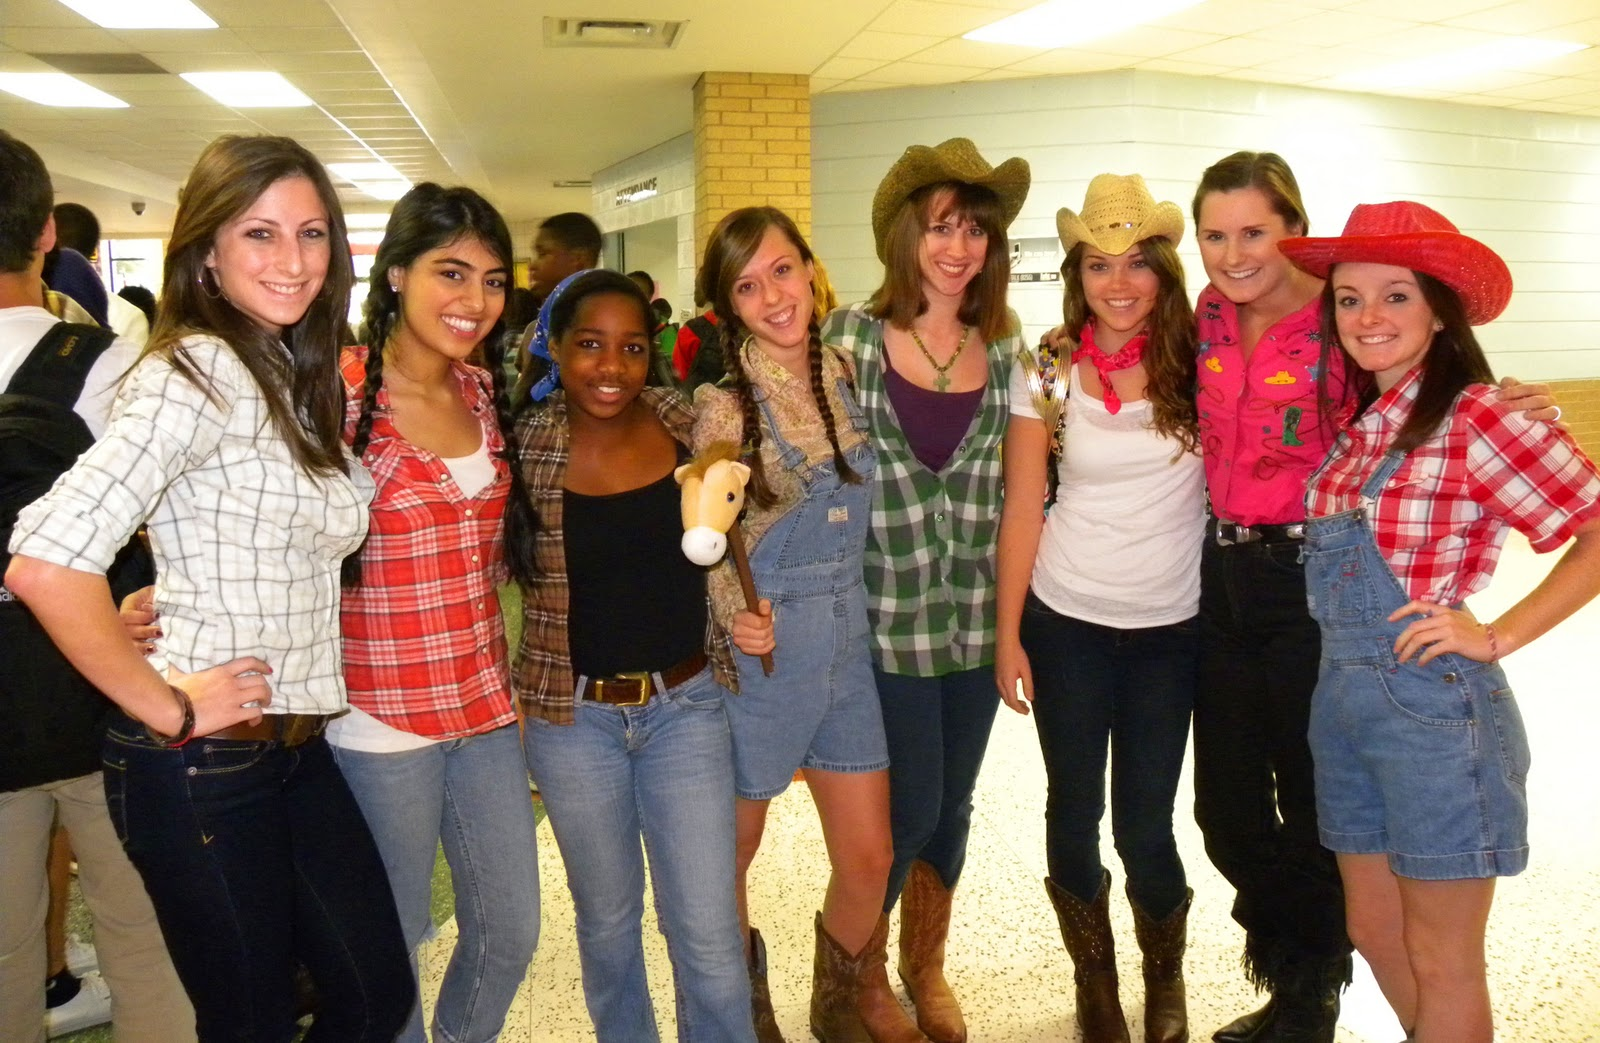 Tacky Day Ideas http://kaitlynsproject365.blogspot.com/2010_09_01_archive.html